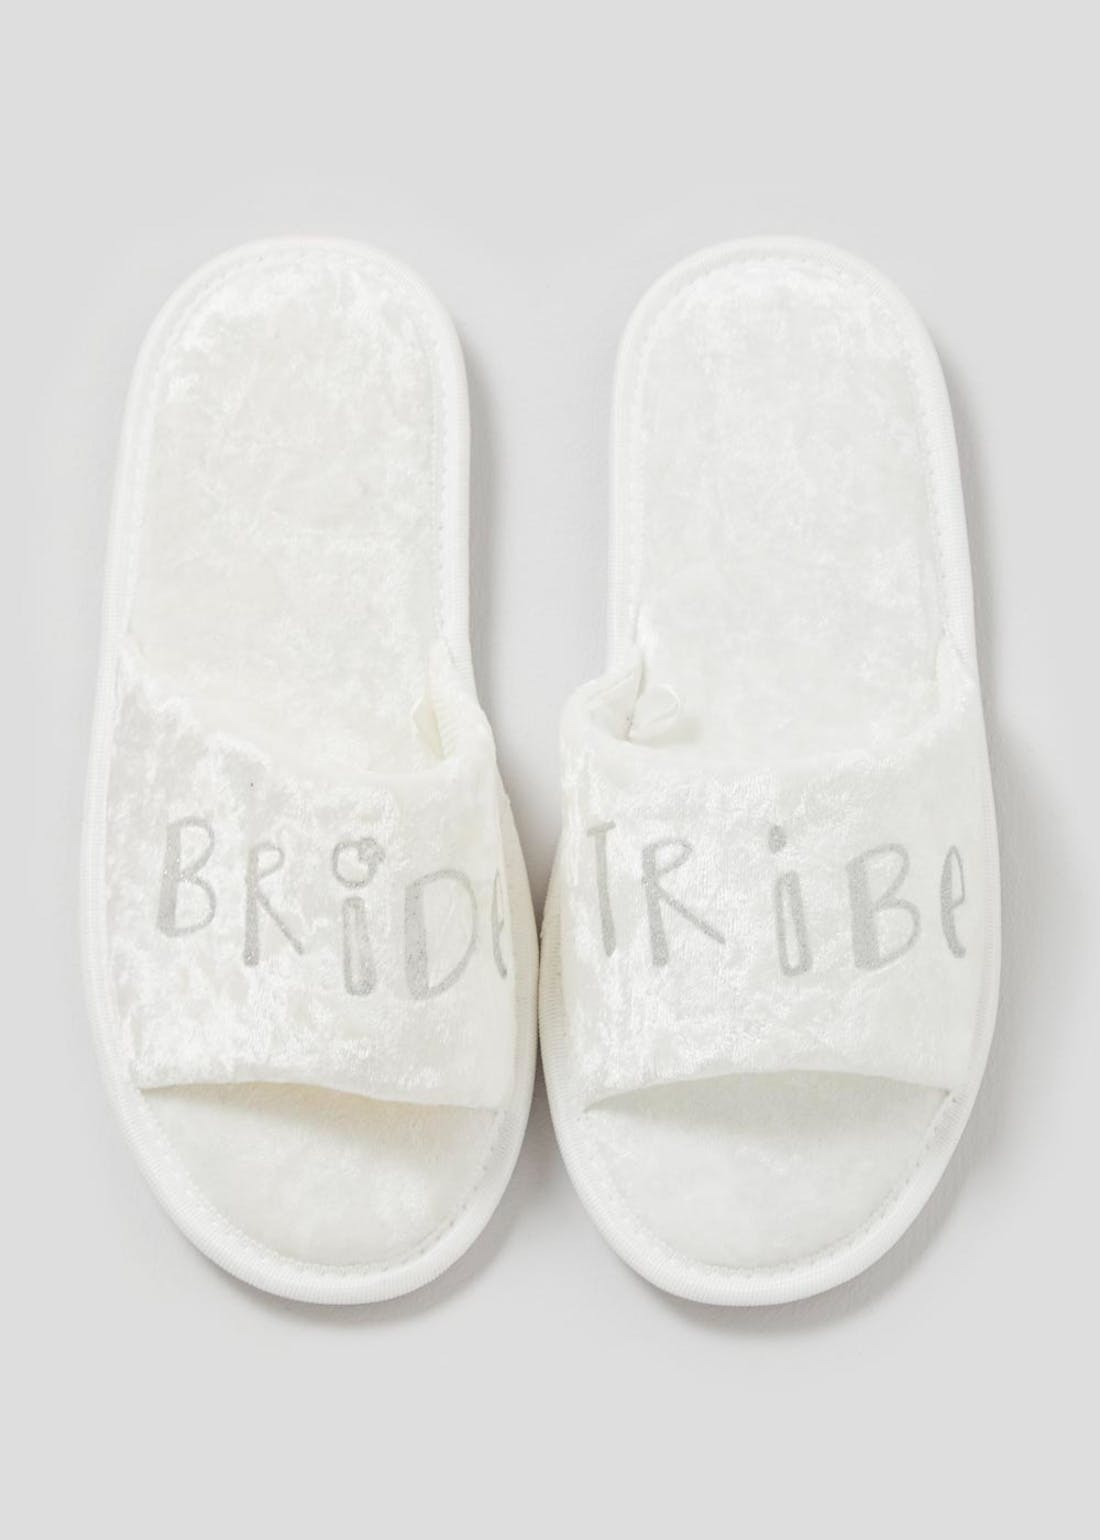 White Velour Bride Tribe Slider Slippers